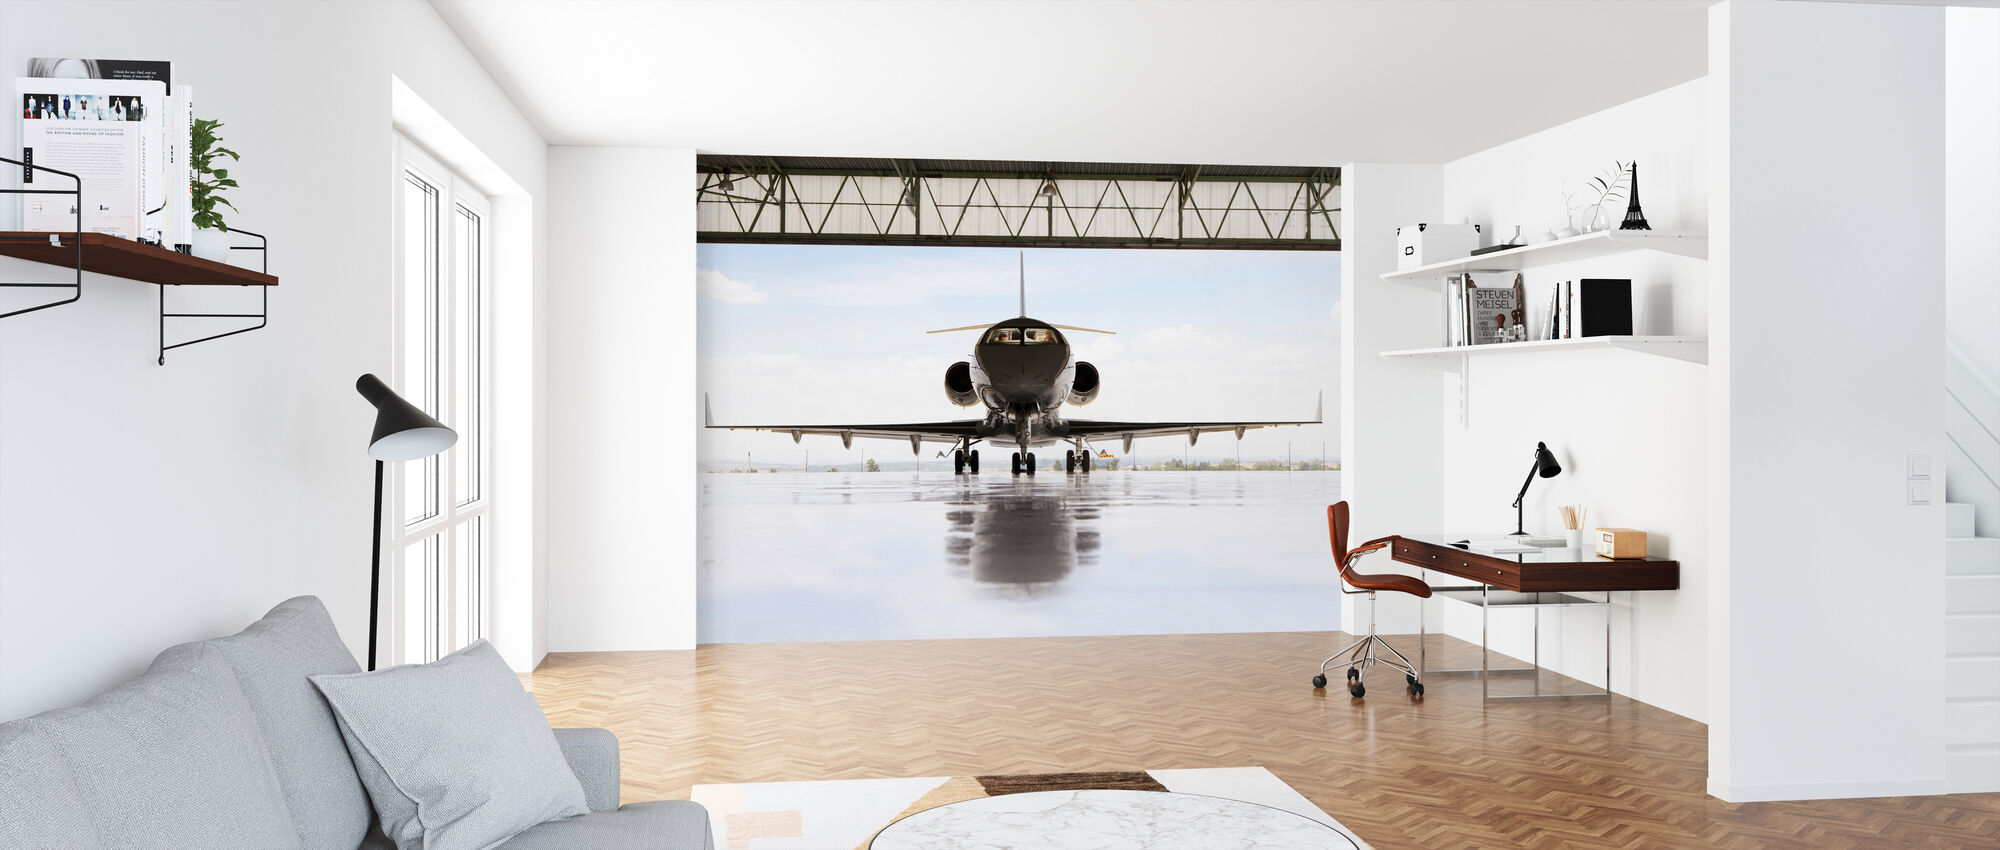 Getting Ready for Take Off - Wallpaper - Office